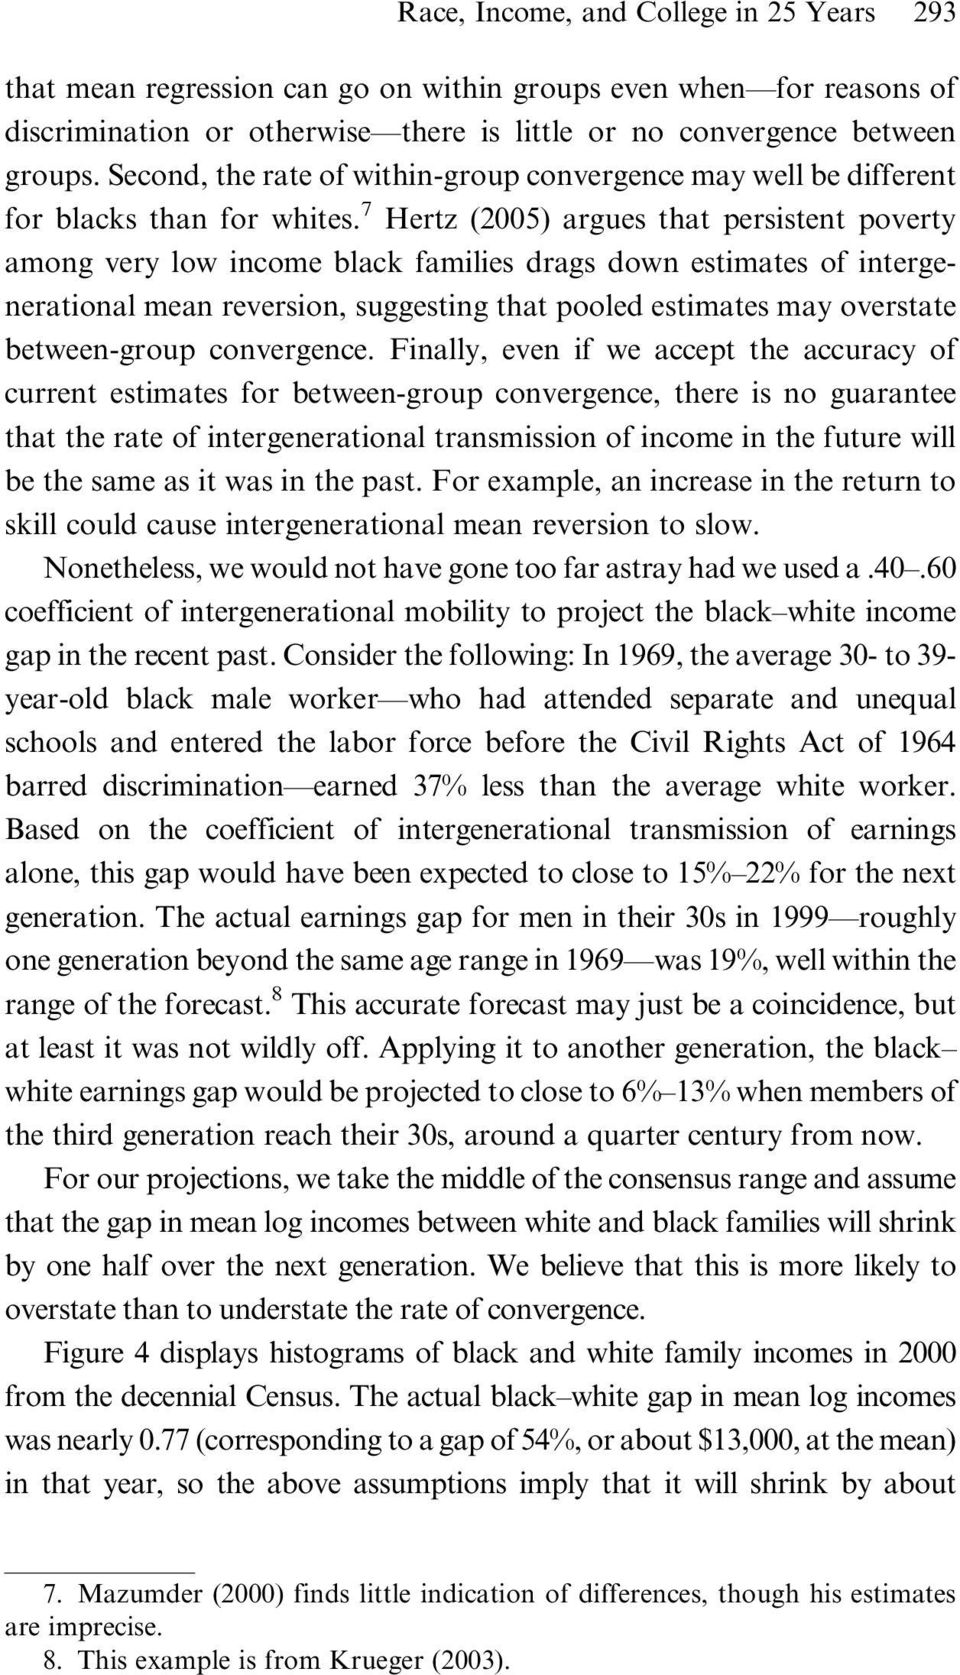 7 Hertz (2005) argues that persistent poverty among very low income black families drags down estimates of intergenerational mean reversion, suggesting that pooled estimates may overstate